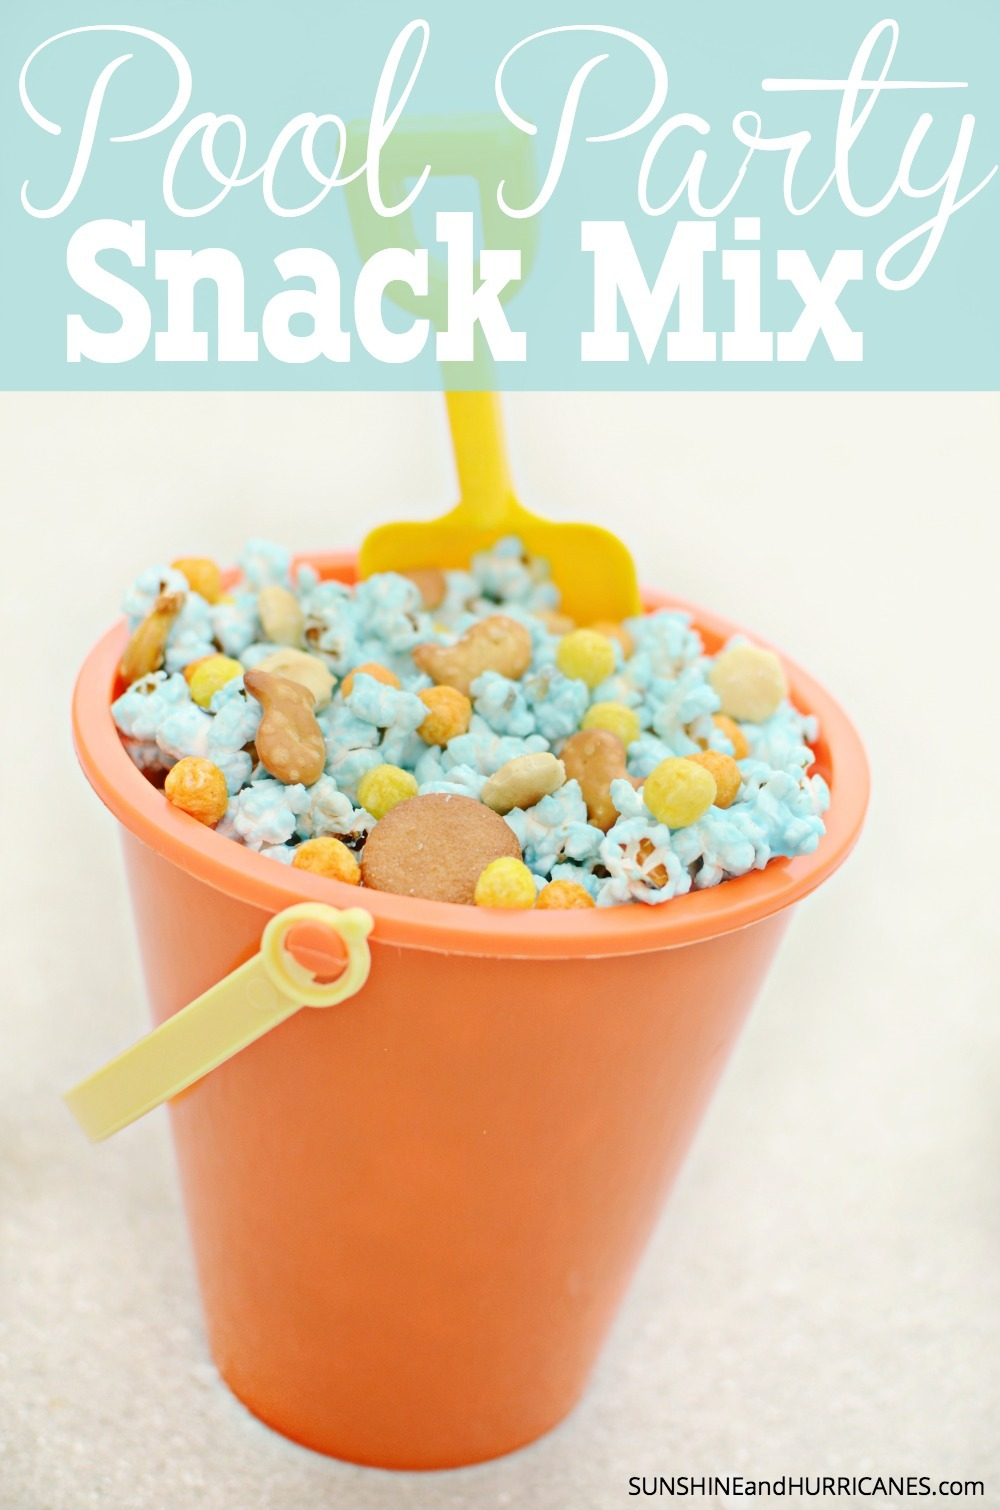 Looking for a fun, tasty and super ridiculously easy snack mix for a pool party or even a kids birthday party. This pool party snack mix is fun and quick to make, plus a little bit weirdly addictive. SunshineandHurricanes.com